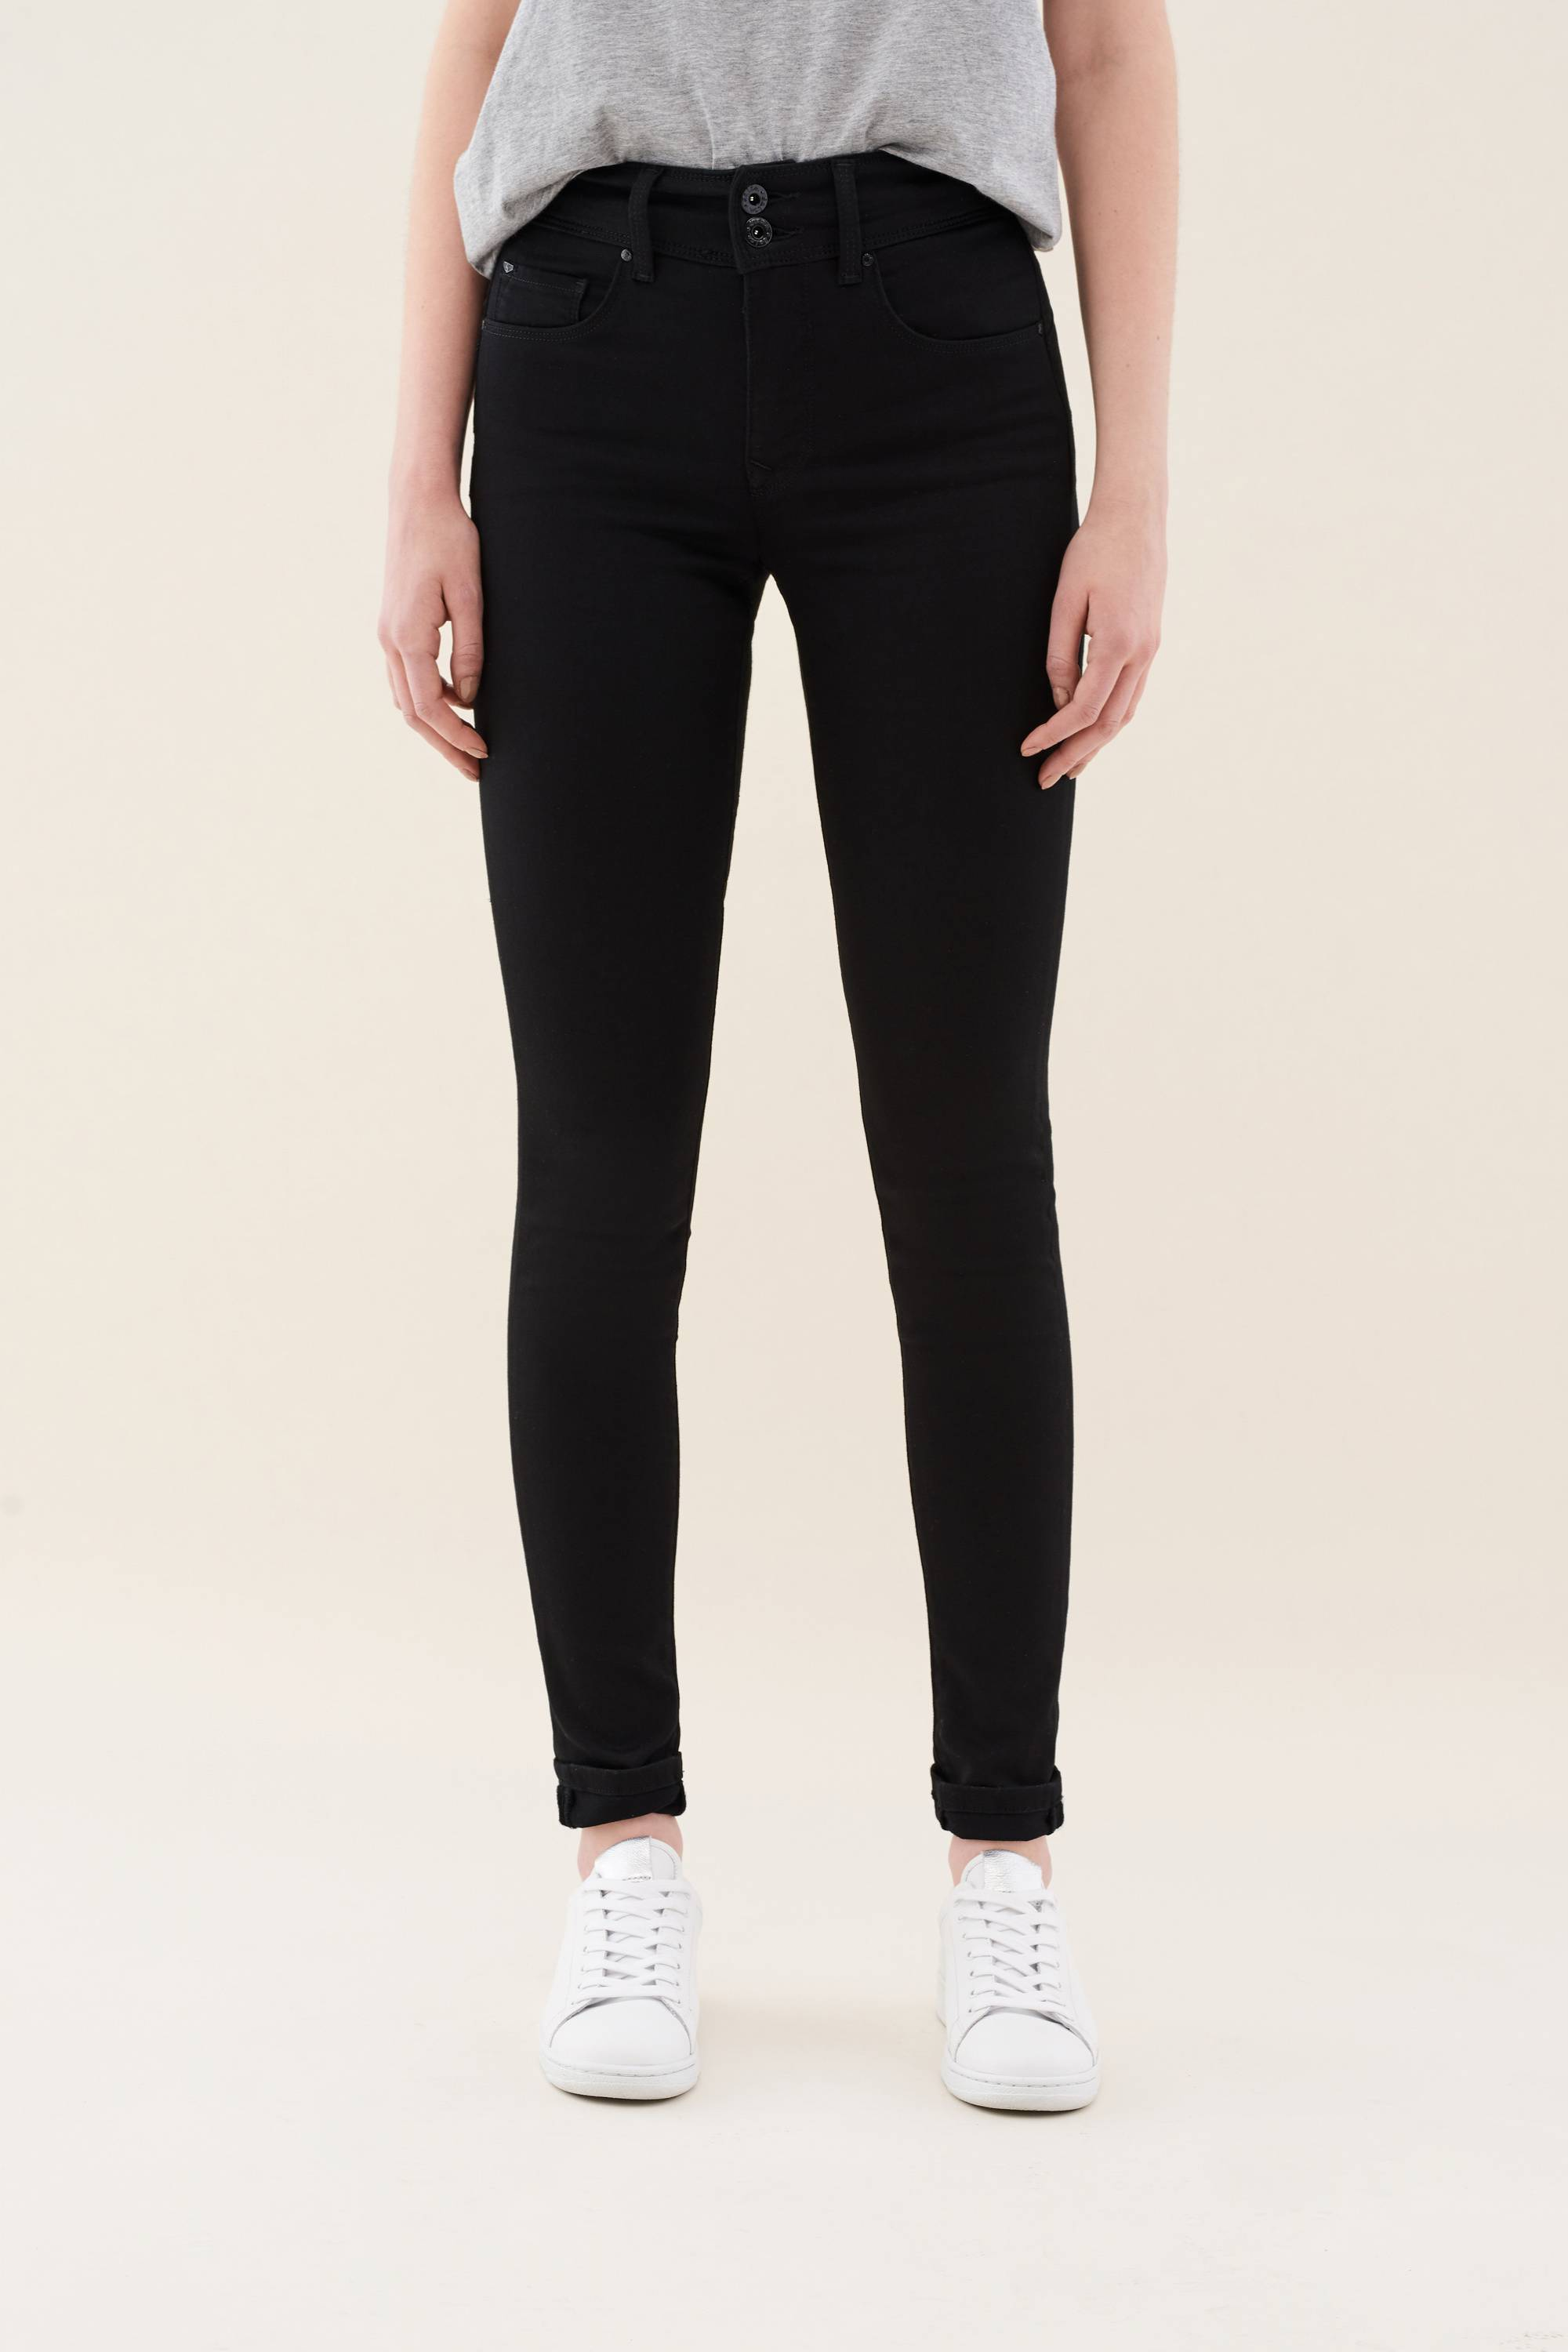 Salsa - Push In High Waist Skinny - Black